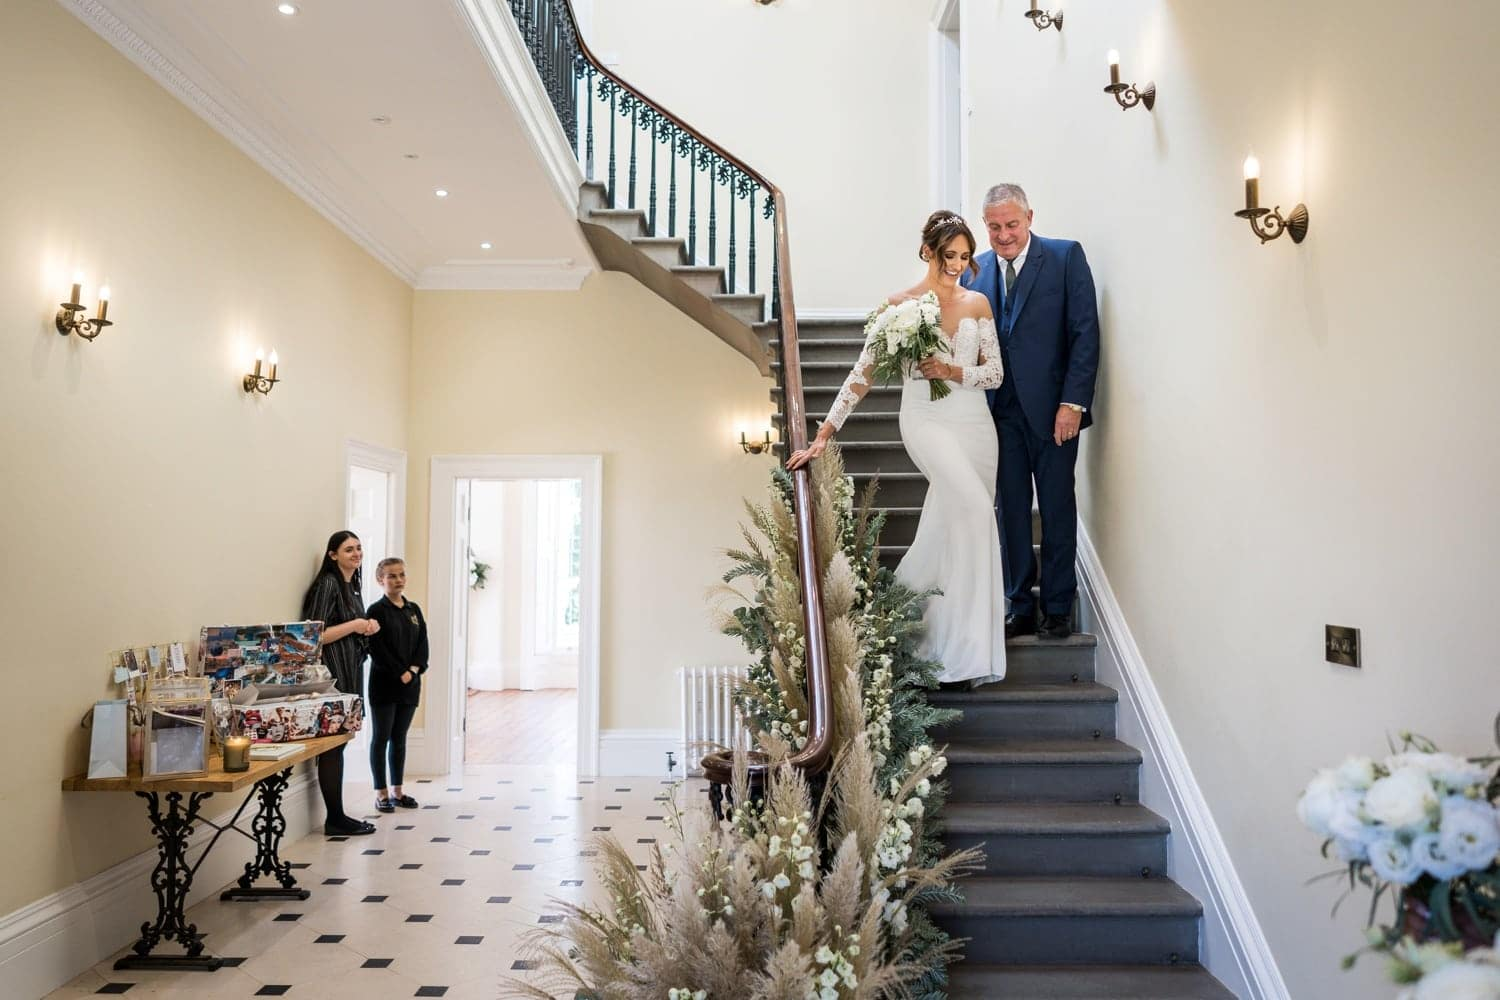 Bride and her father on stairs at St Tewdrics House, Monmouthshire, South Wales